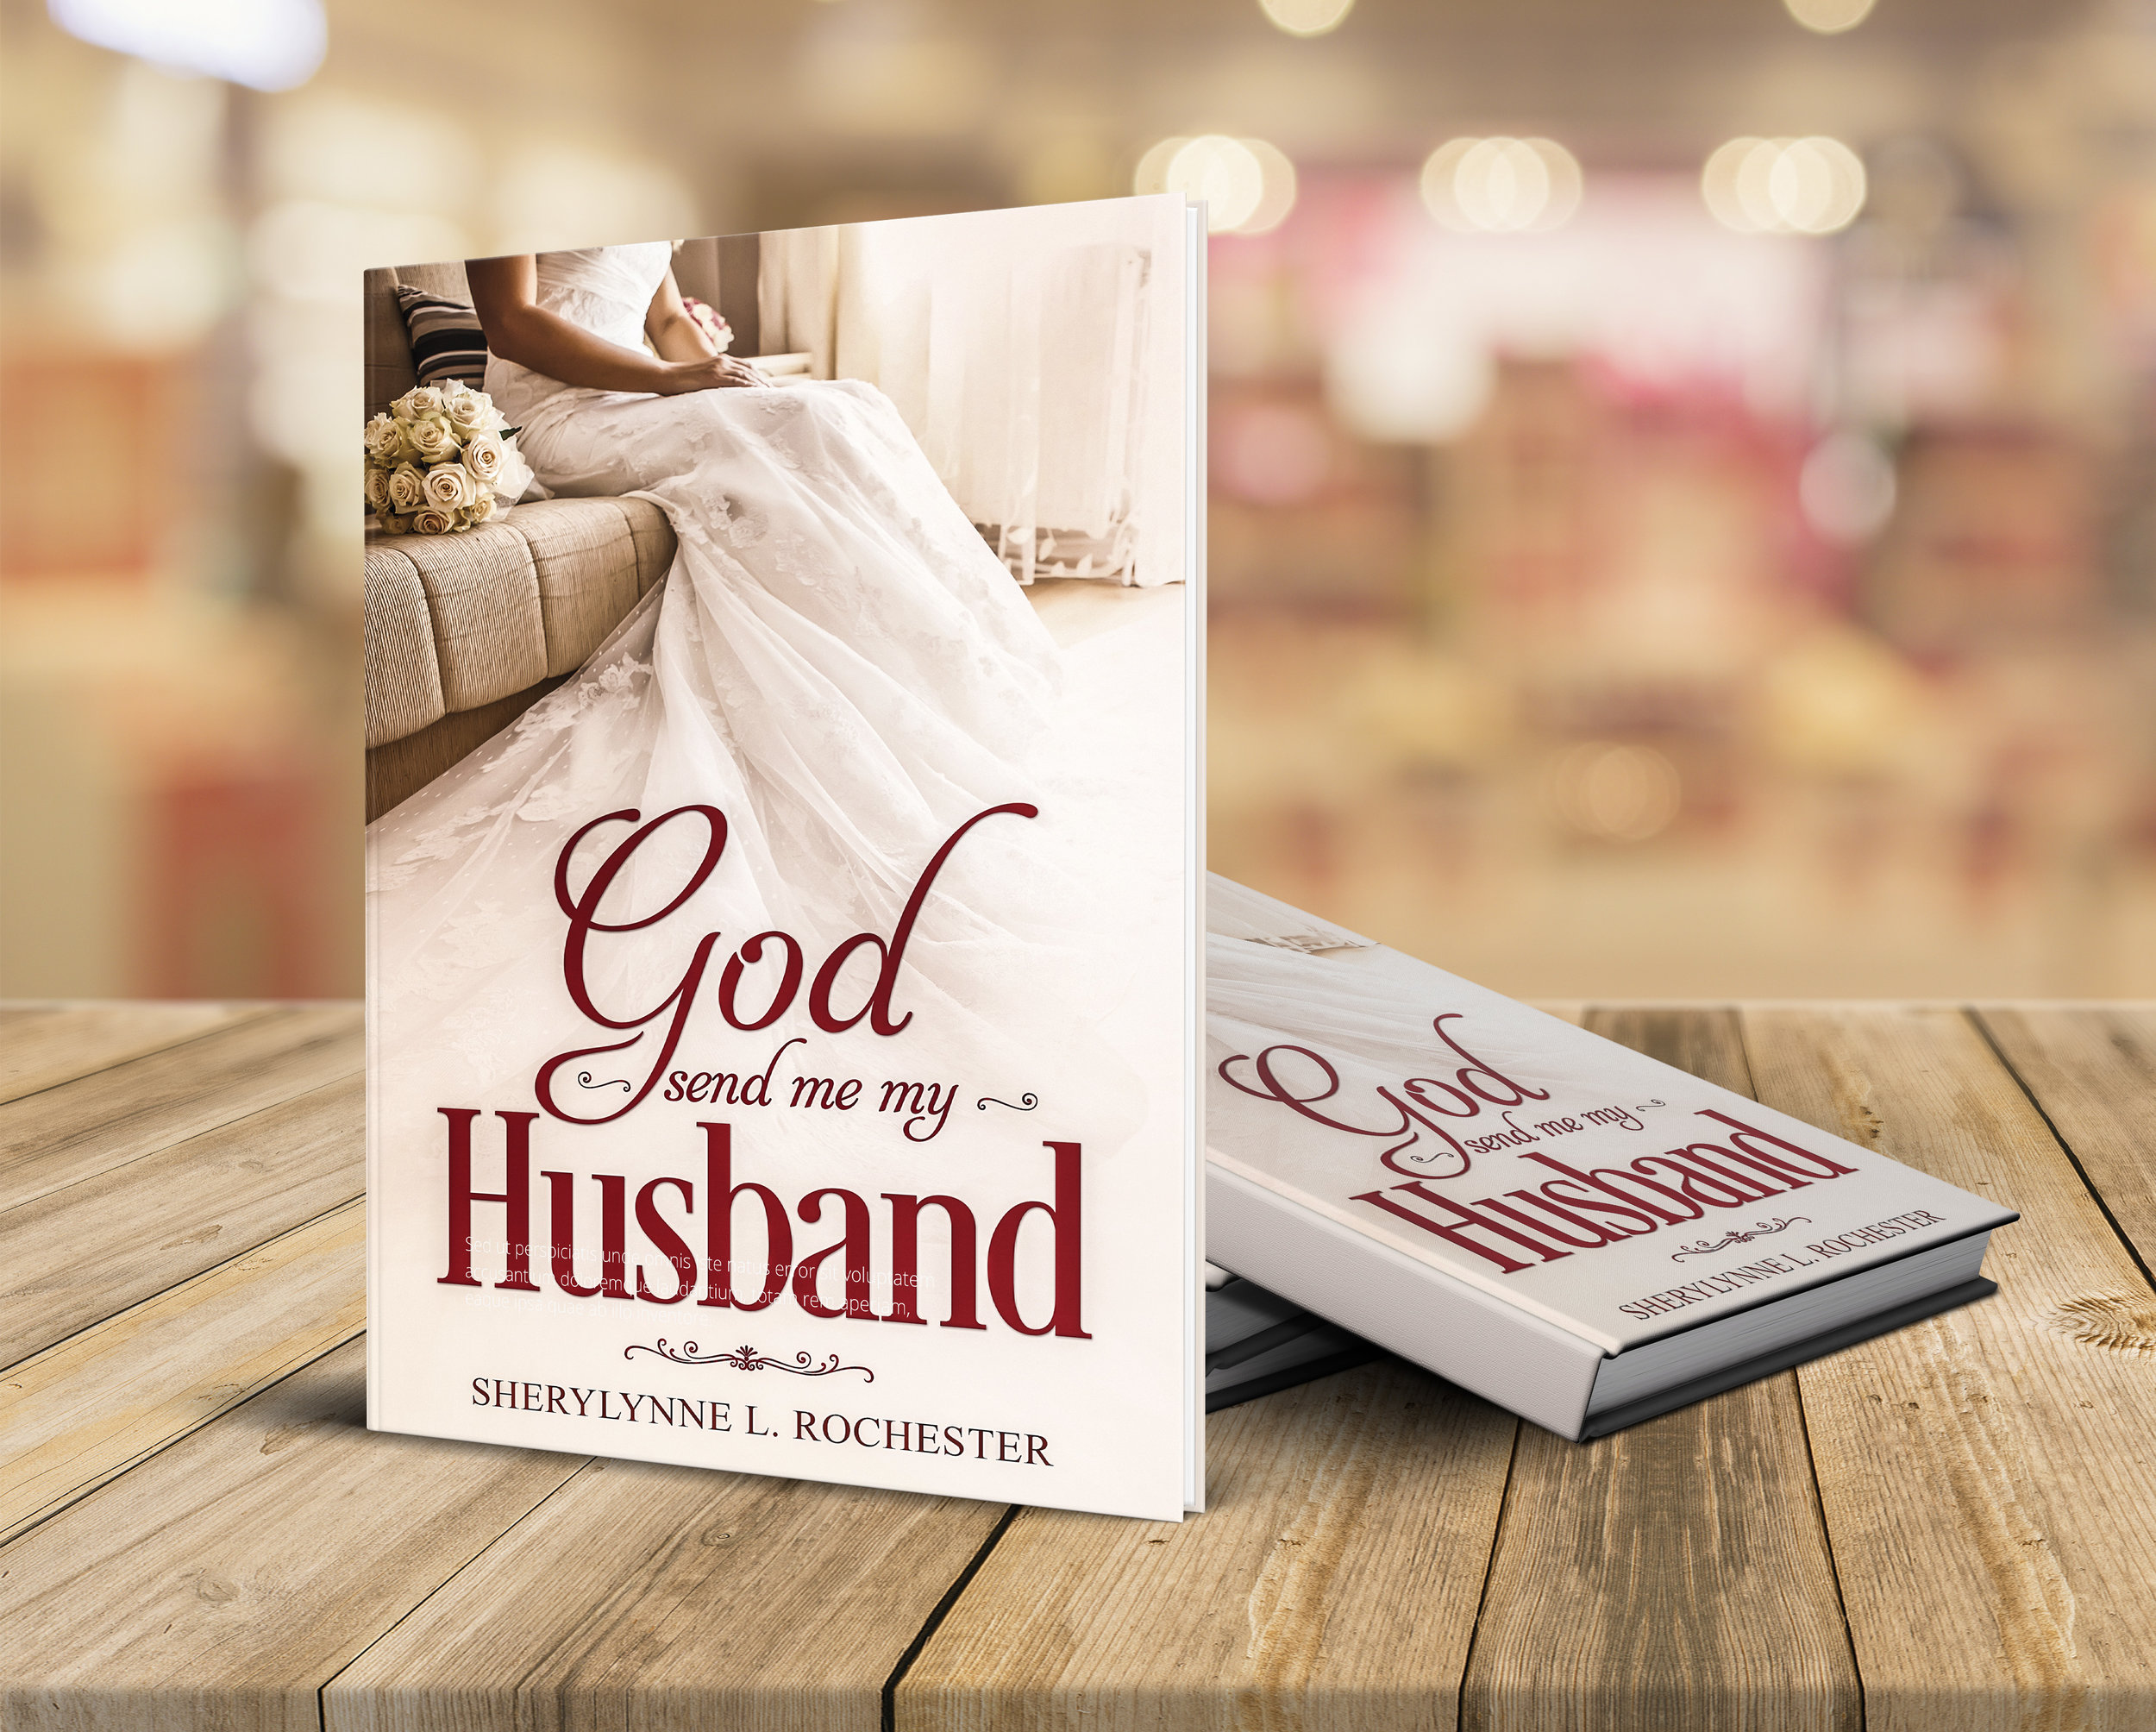 FREE STUDY GUIDE - Have you read the book, God Send Me My Husband? If so, get your FREE study guide by clicking below.